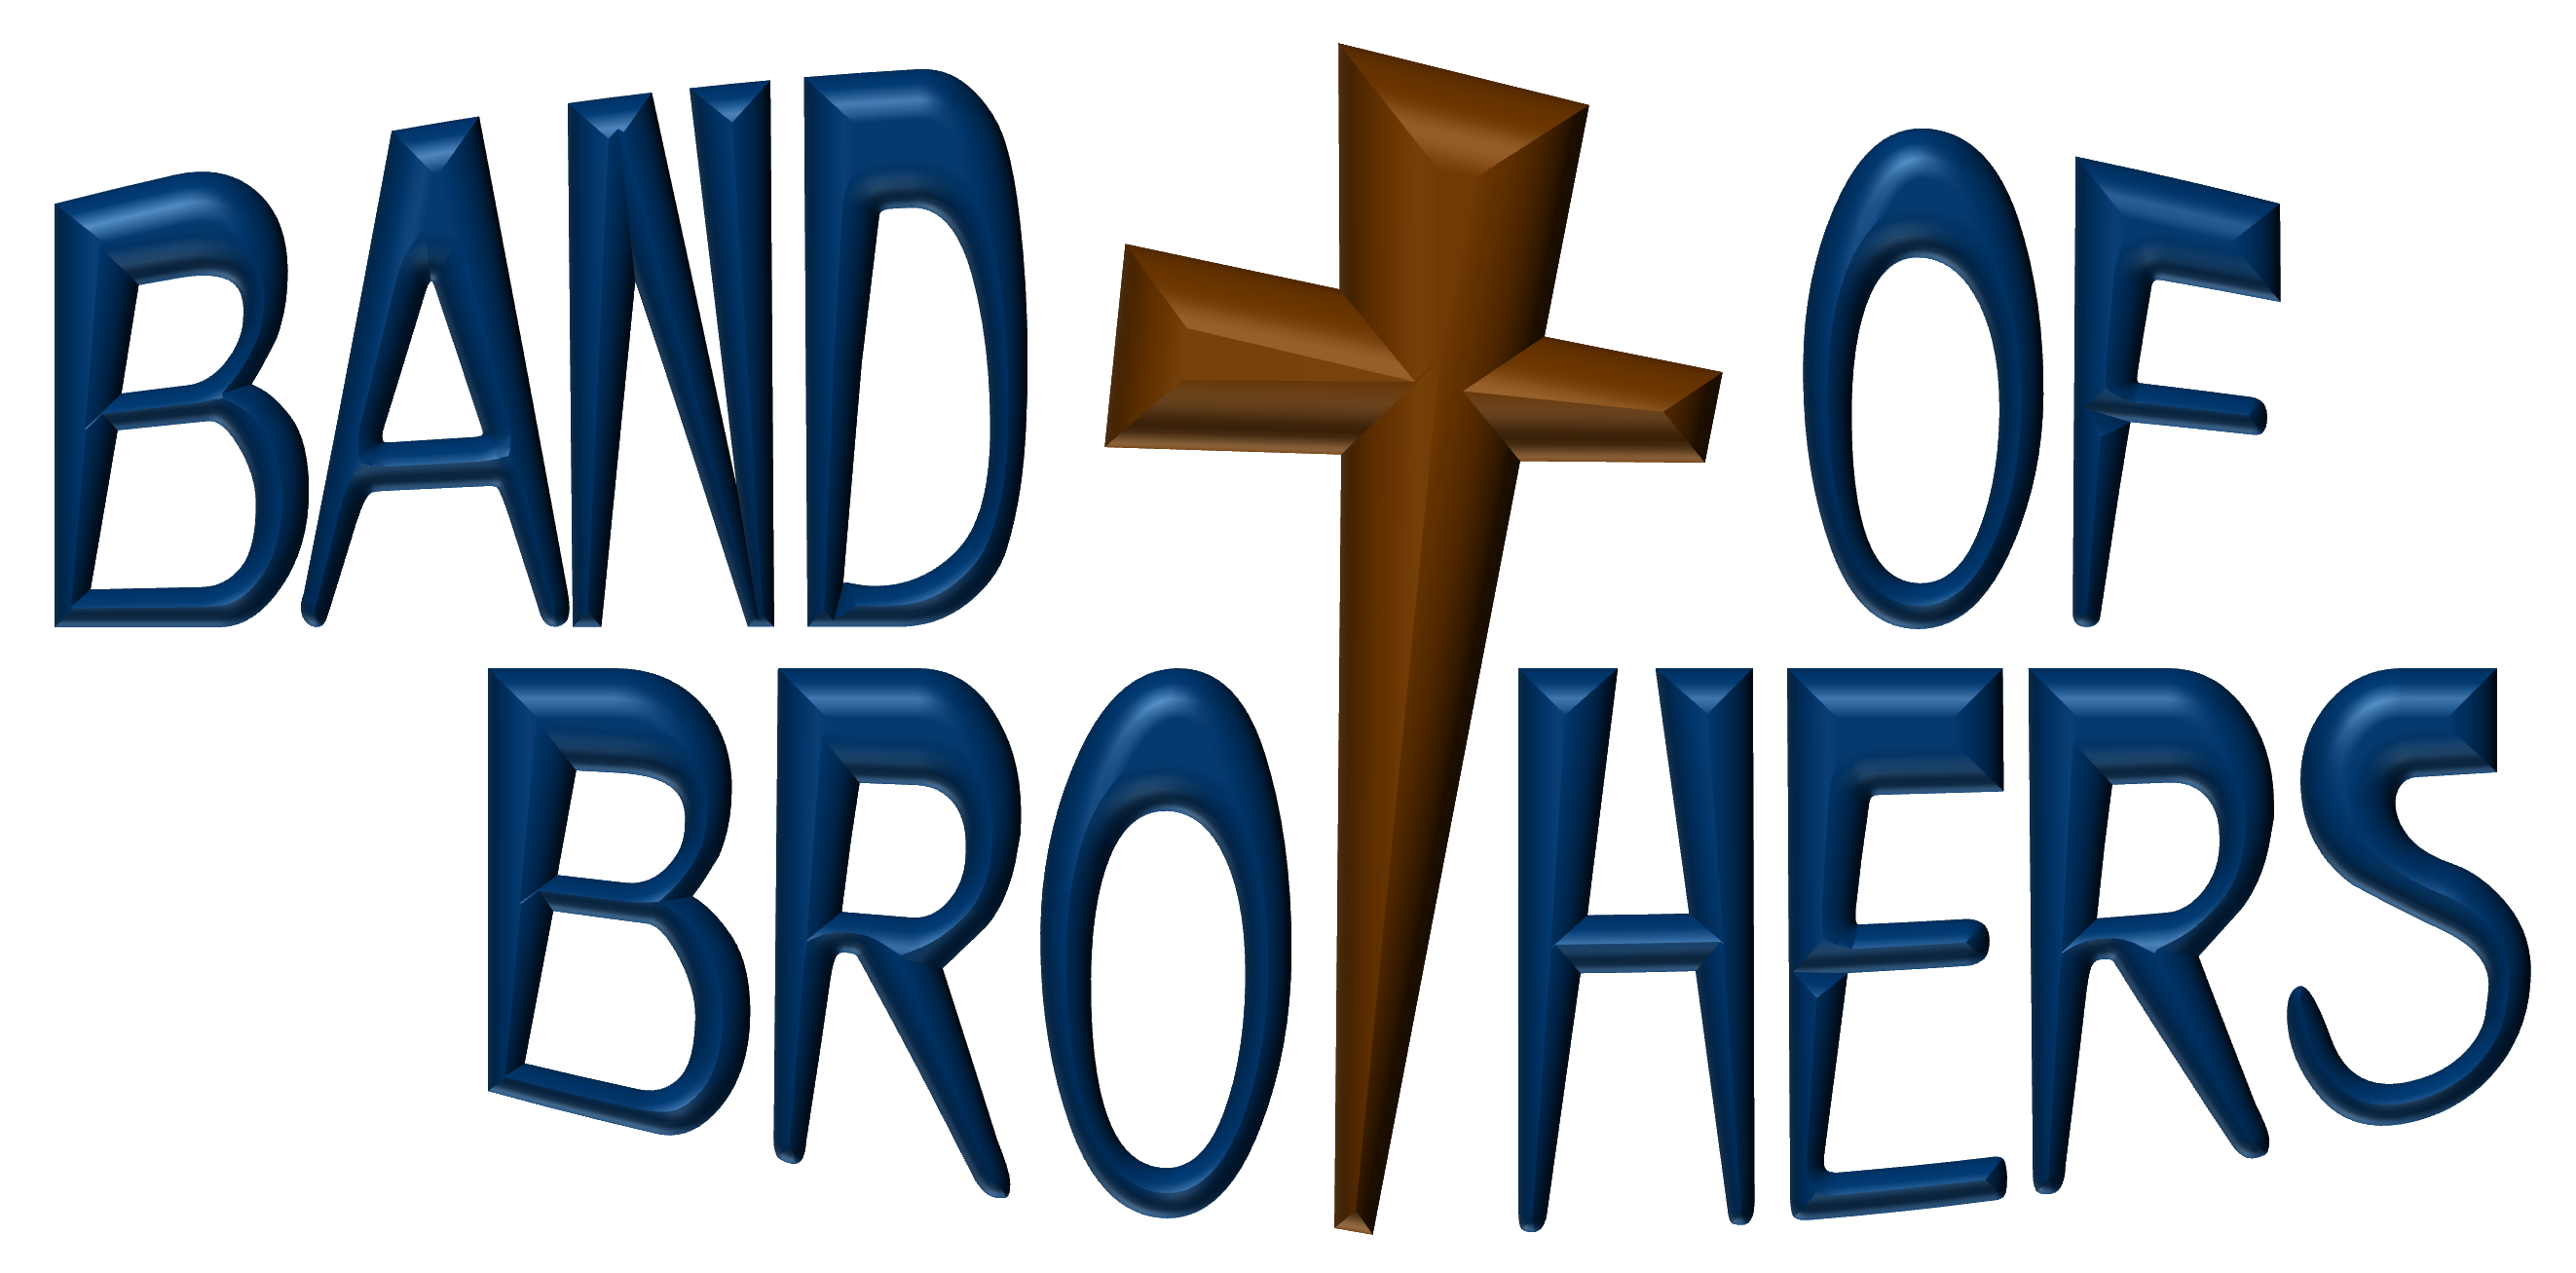 2645x1307 Men's Ministry Christian Church Of Manteno